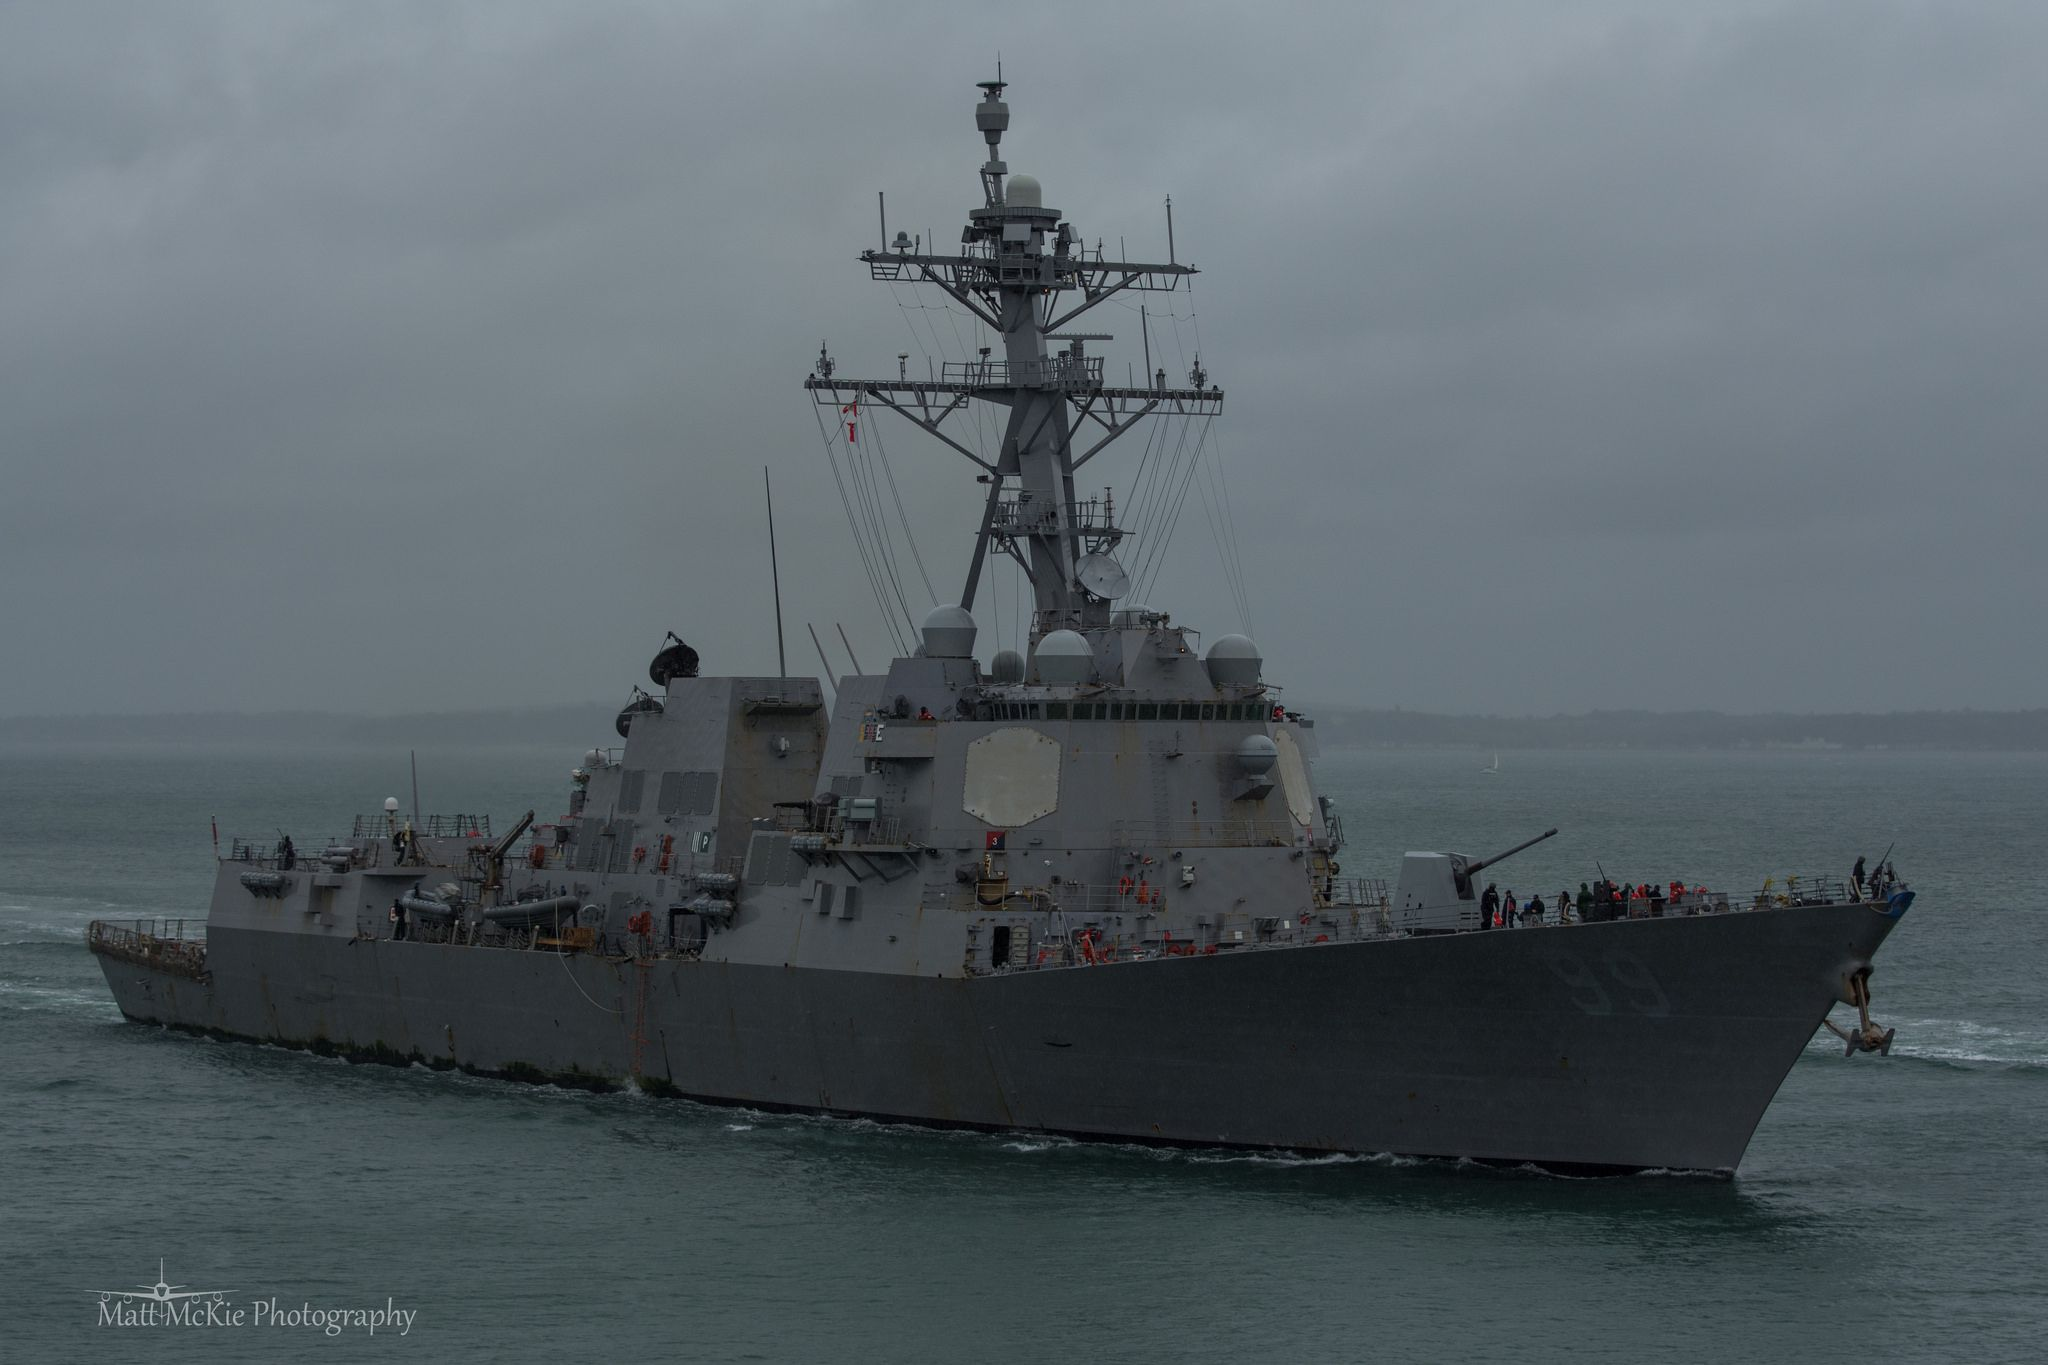 LAMINATED POSTER The U.S. Navy guided missile destroyer